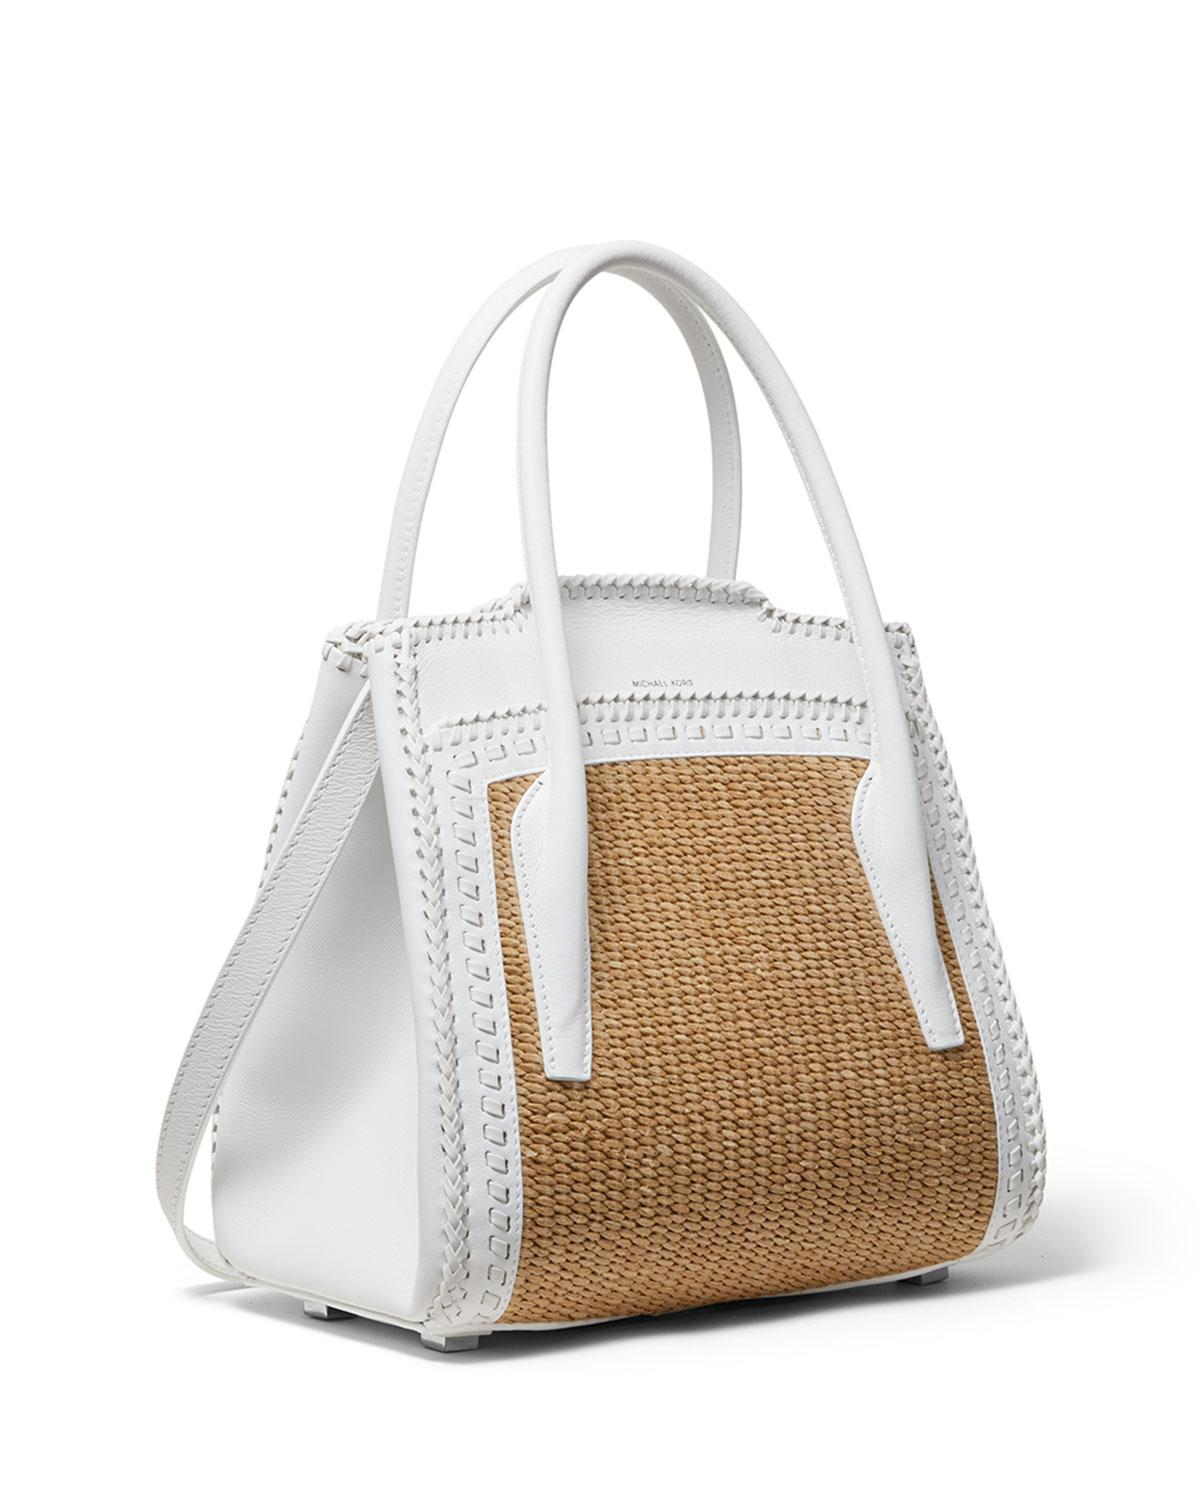 d23e735ac5e6 Michael Kors Straw And Leather Medium Satchel Bag in White - Lyst